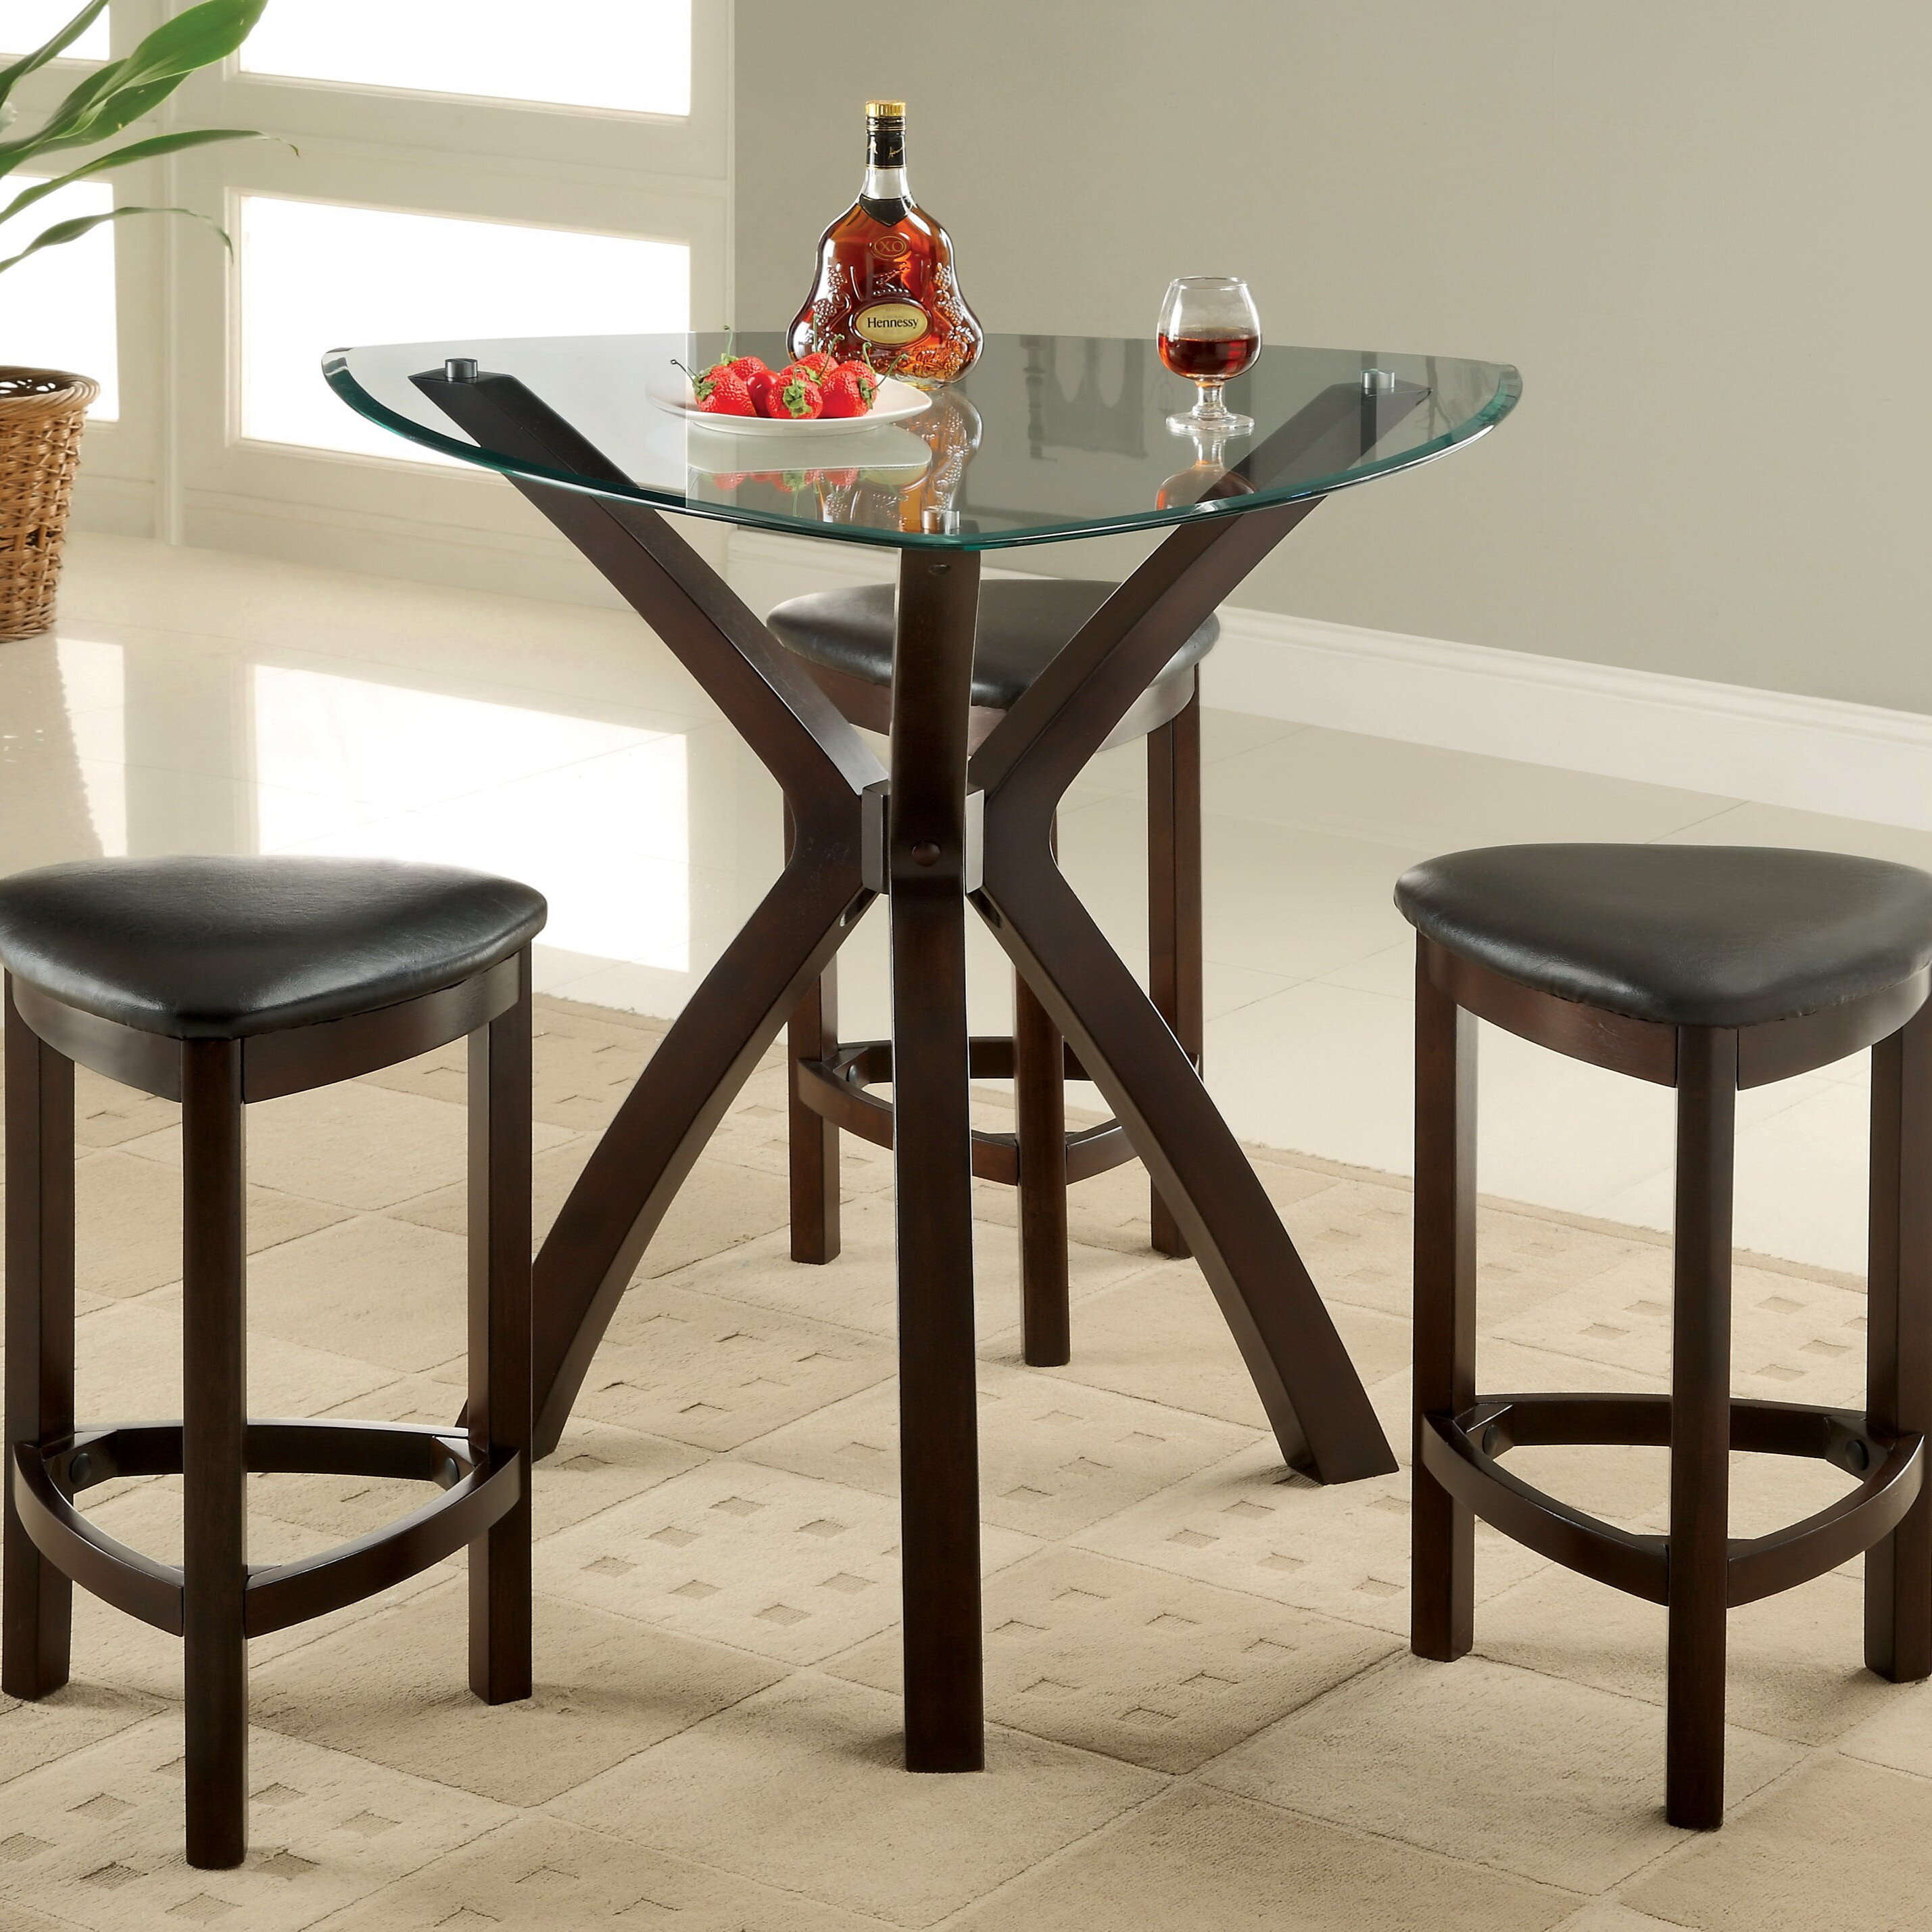 Hokku designs 4 piece counter height dining set reviews for 4 piece kitchen table set